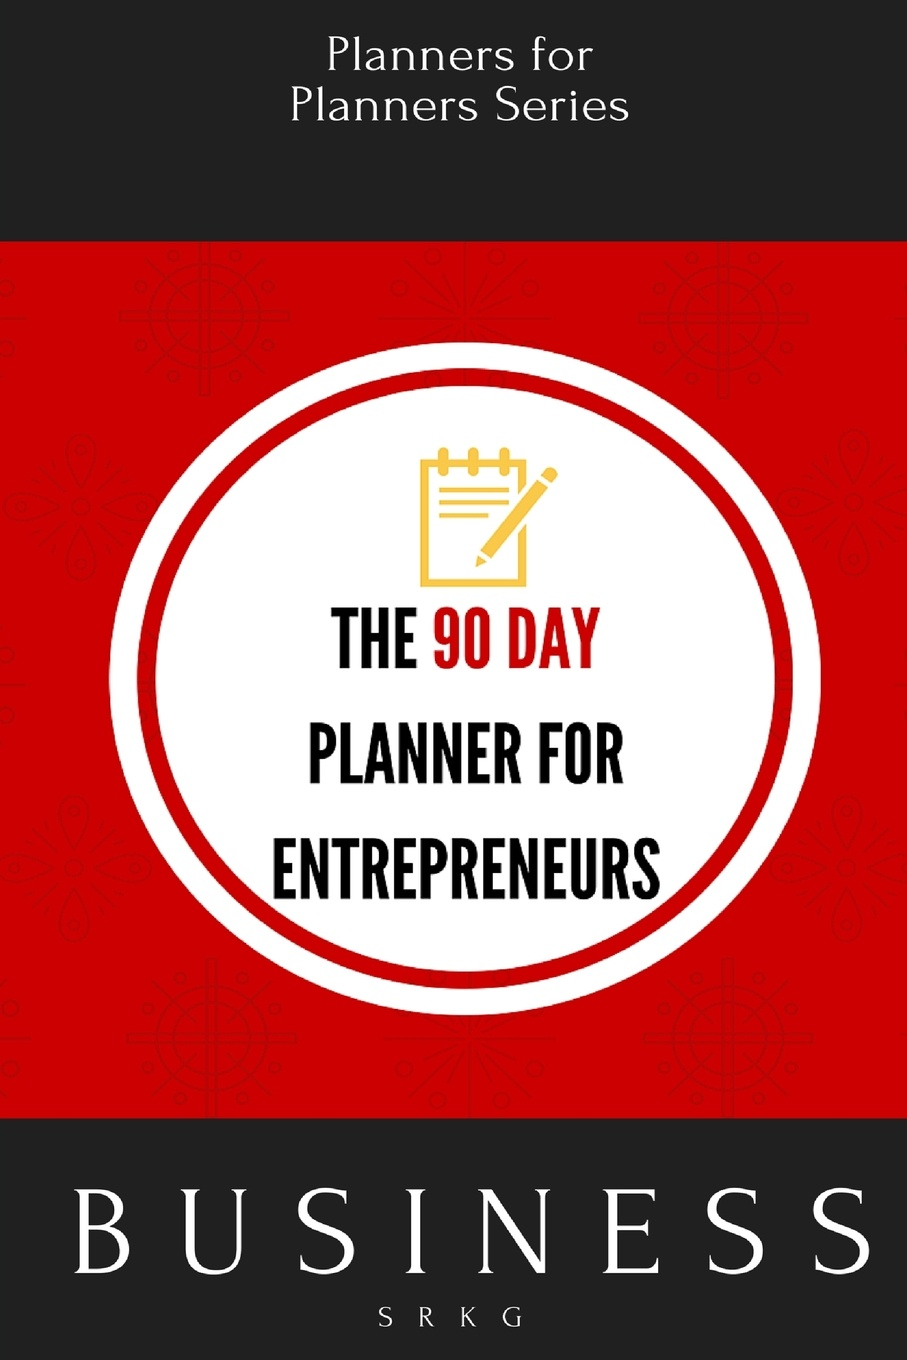 Planners for Planners The 90 Day Planner for Entrepreneurs set connections for hoses gardena 01505 2700000